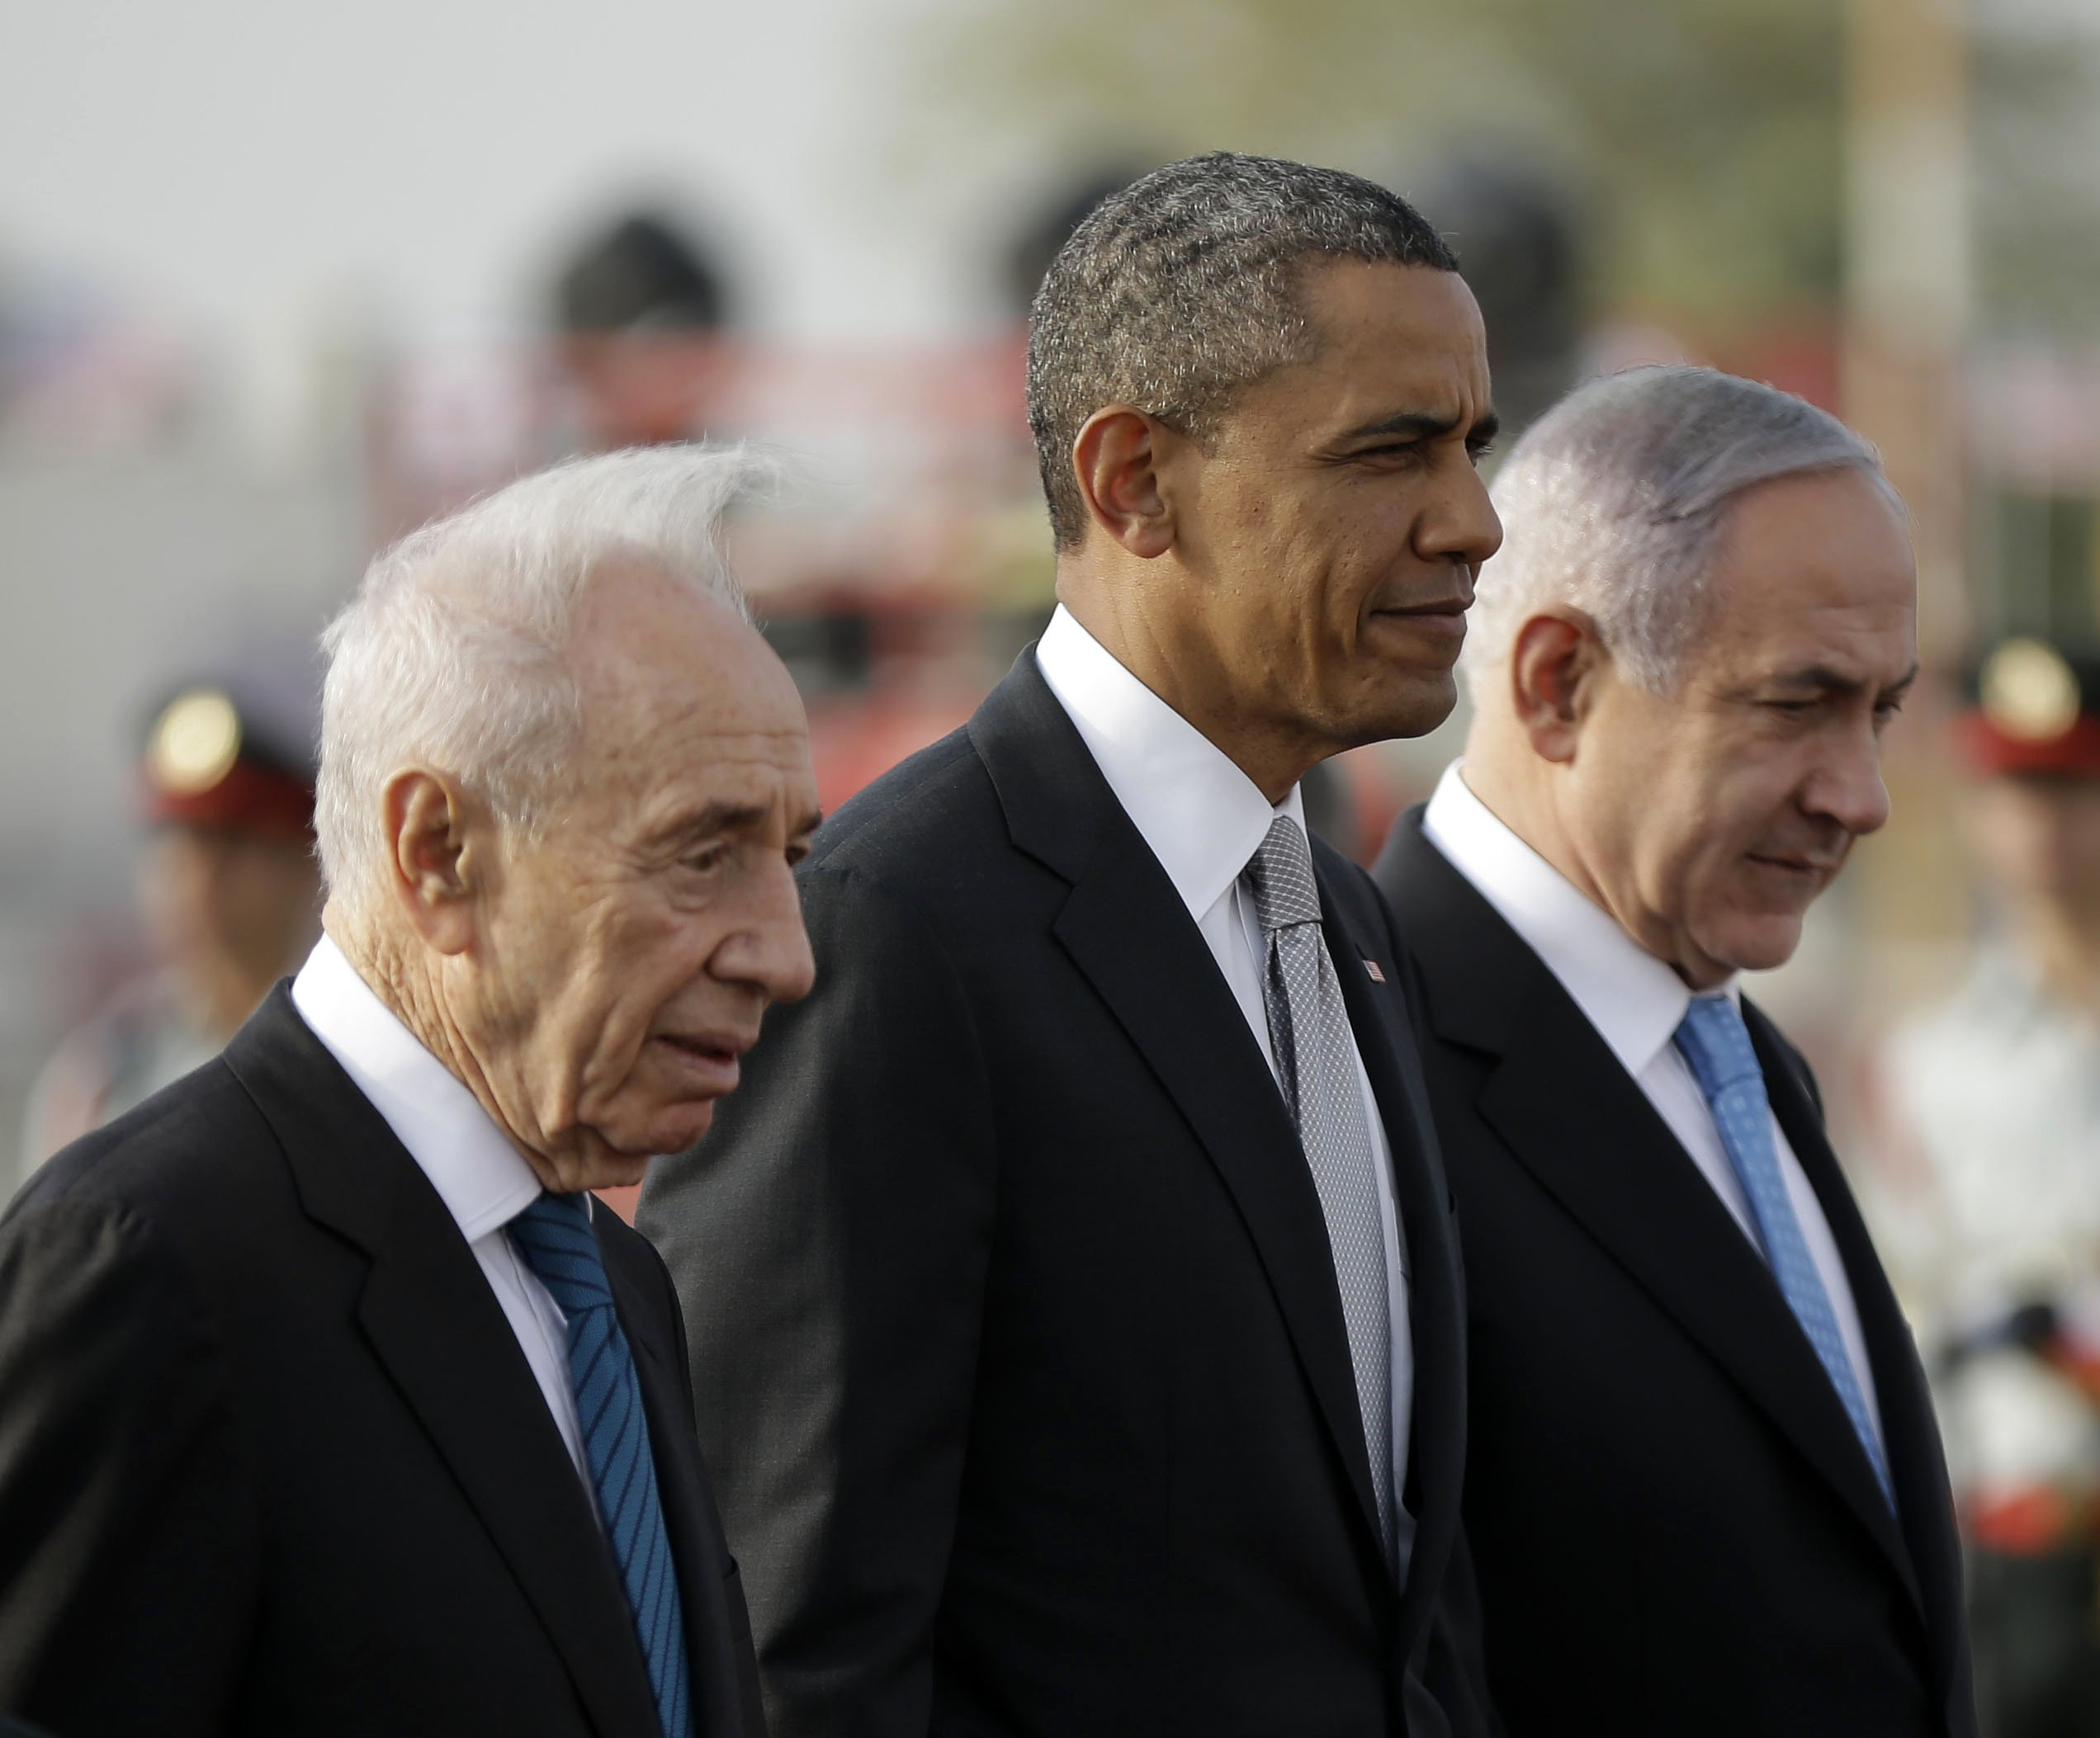 Obama praises Peres for advancing dignity and goodwill